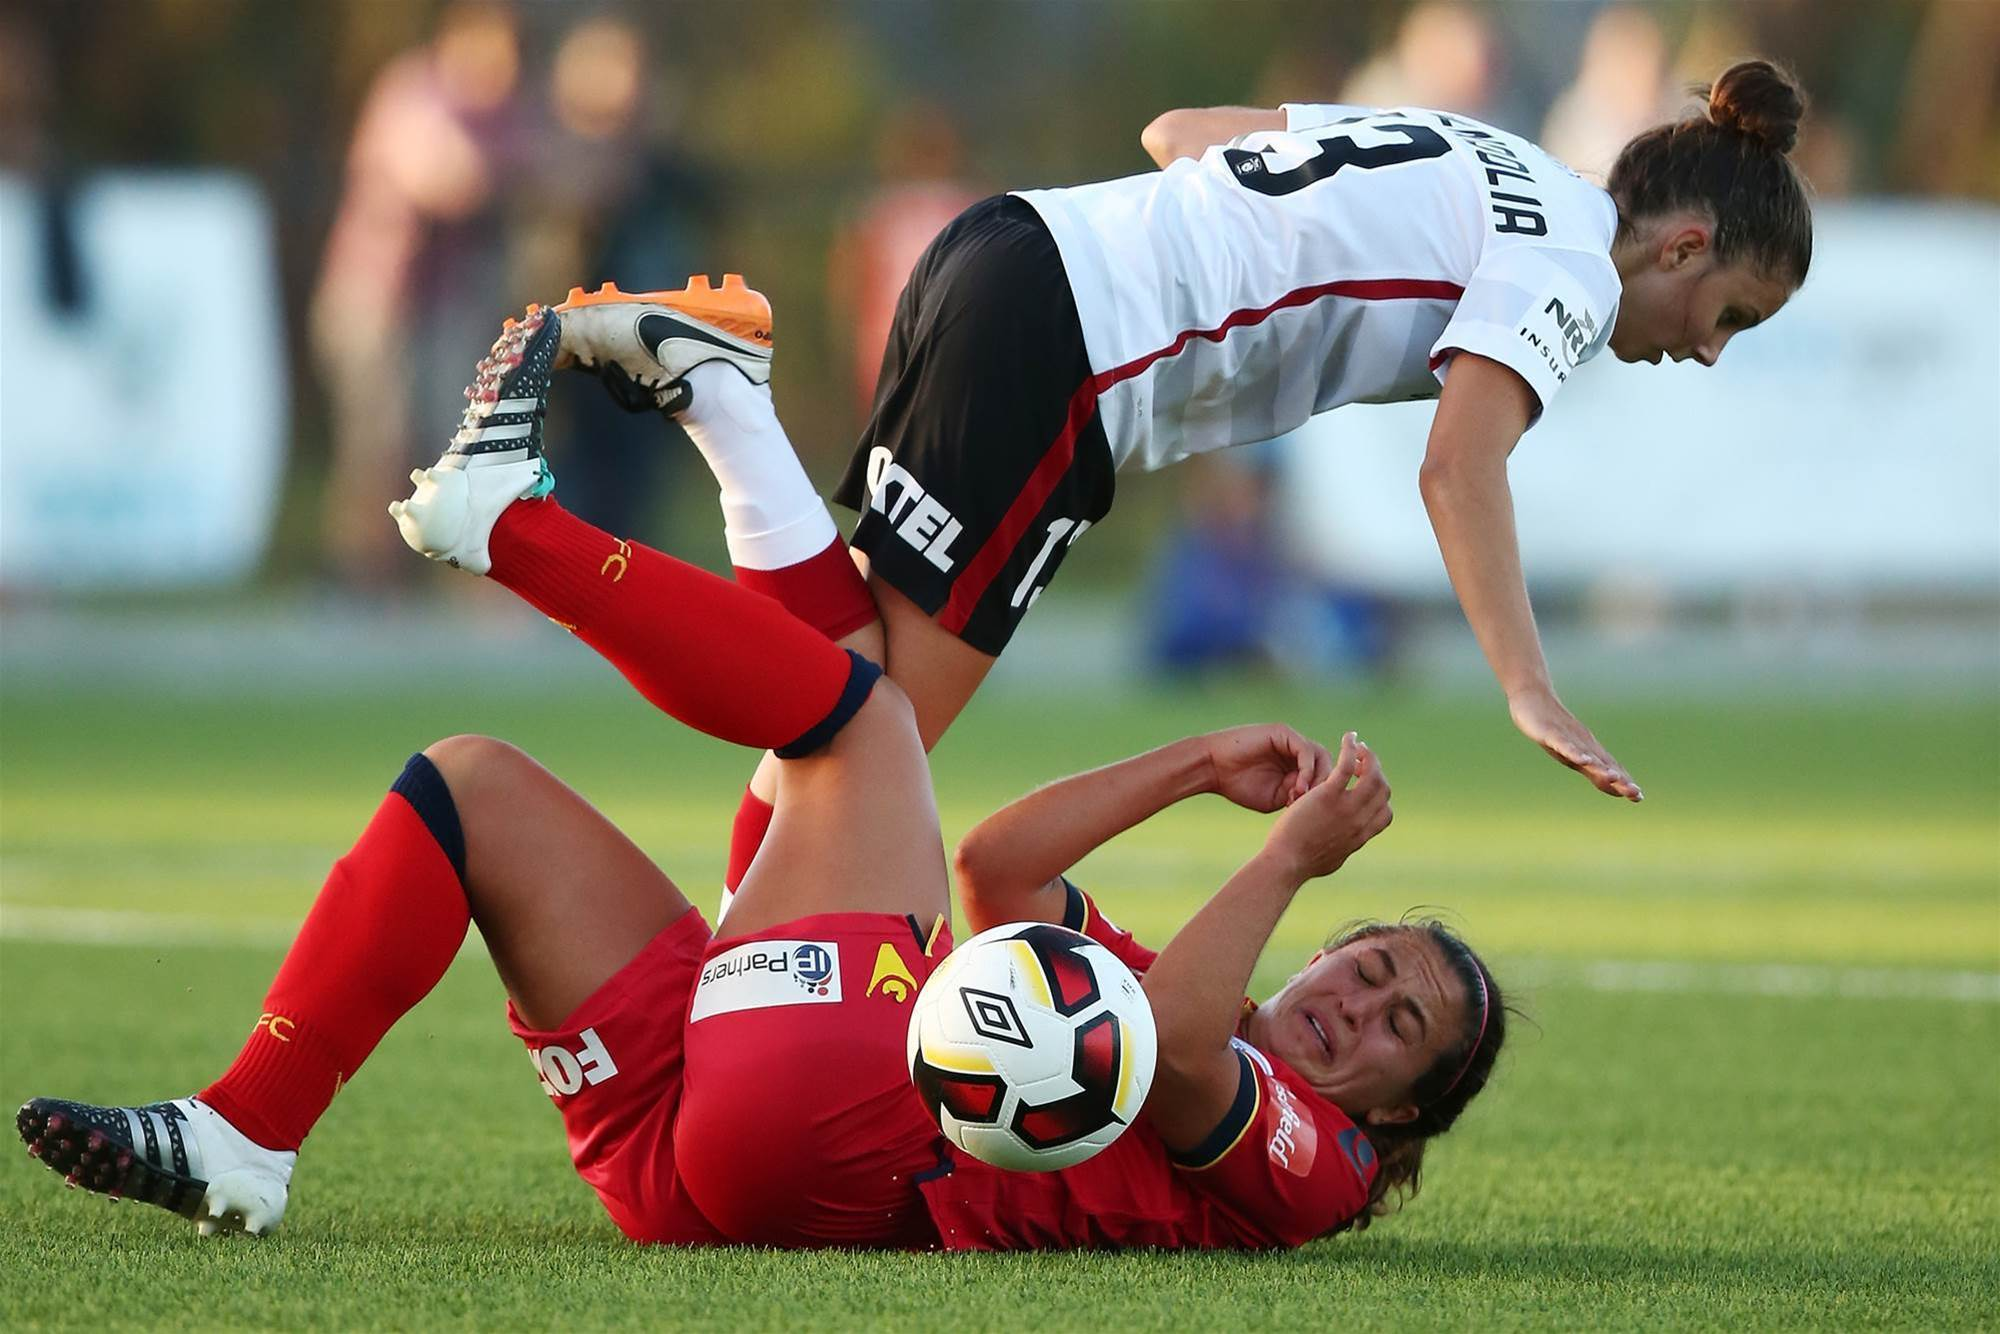 W-League Round 12 pic special